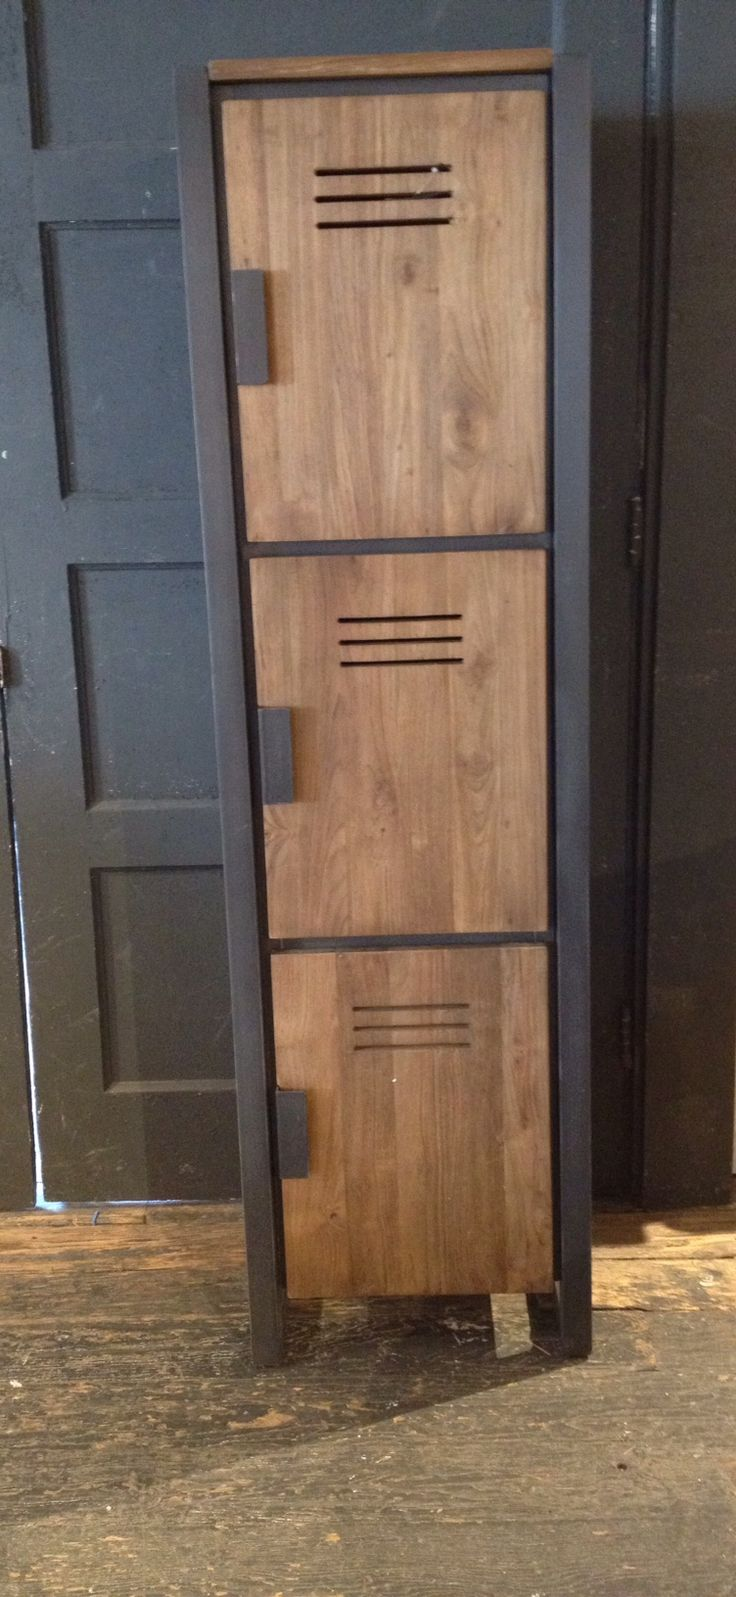 Beautiful locker style doors would be perfect for shoes storage!! Or pretty much anything else.